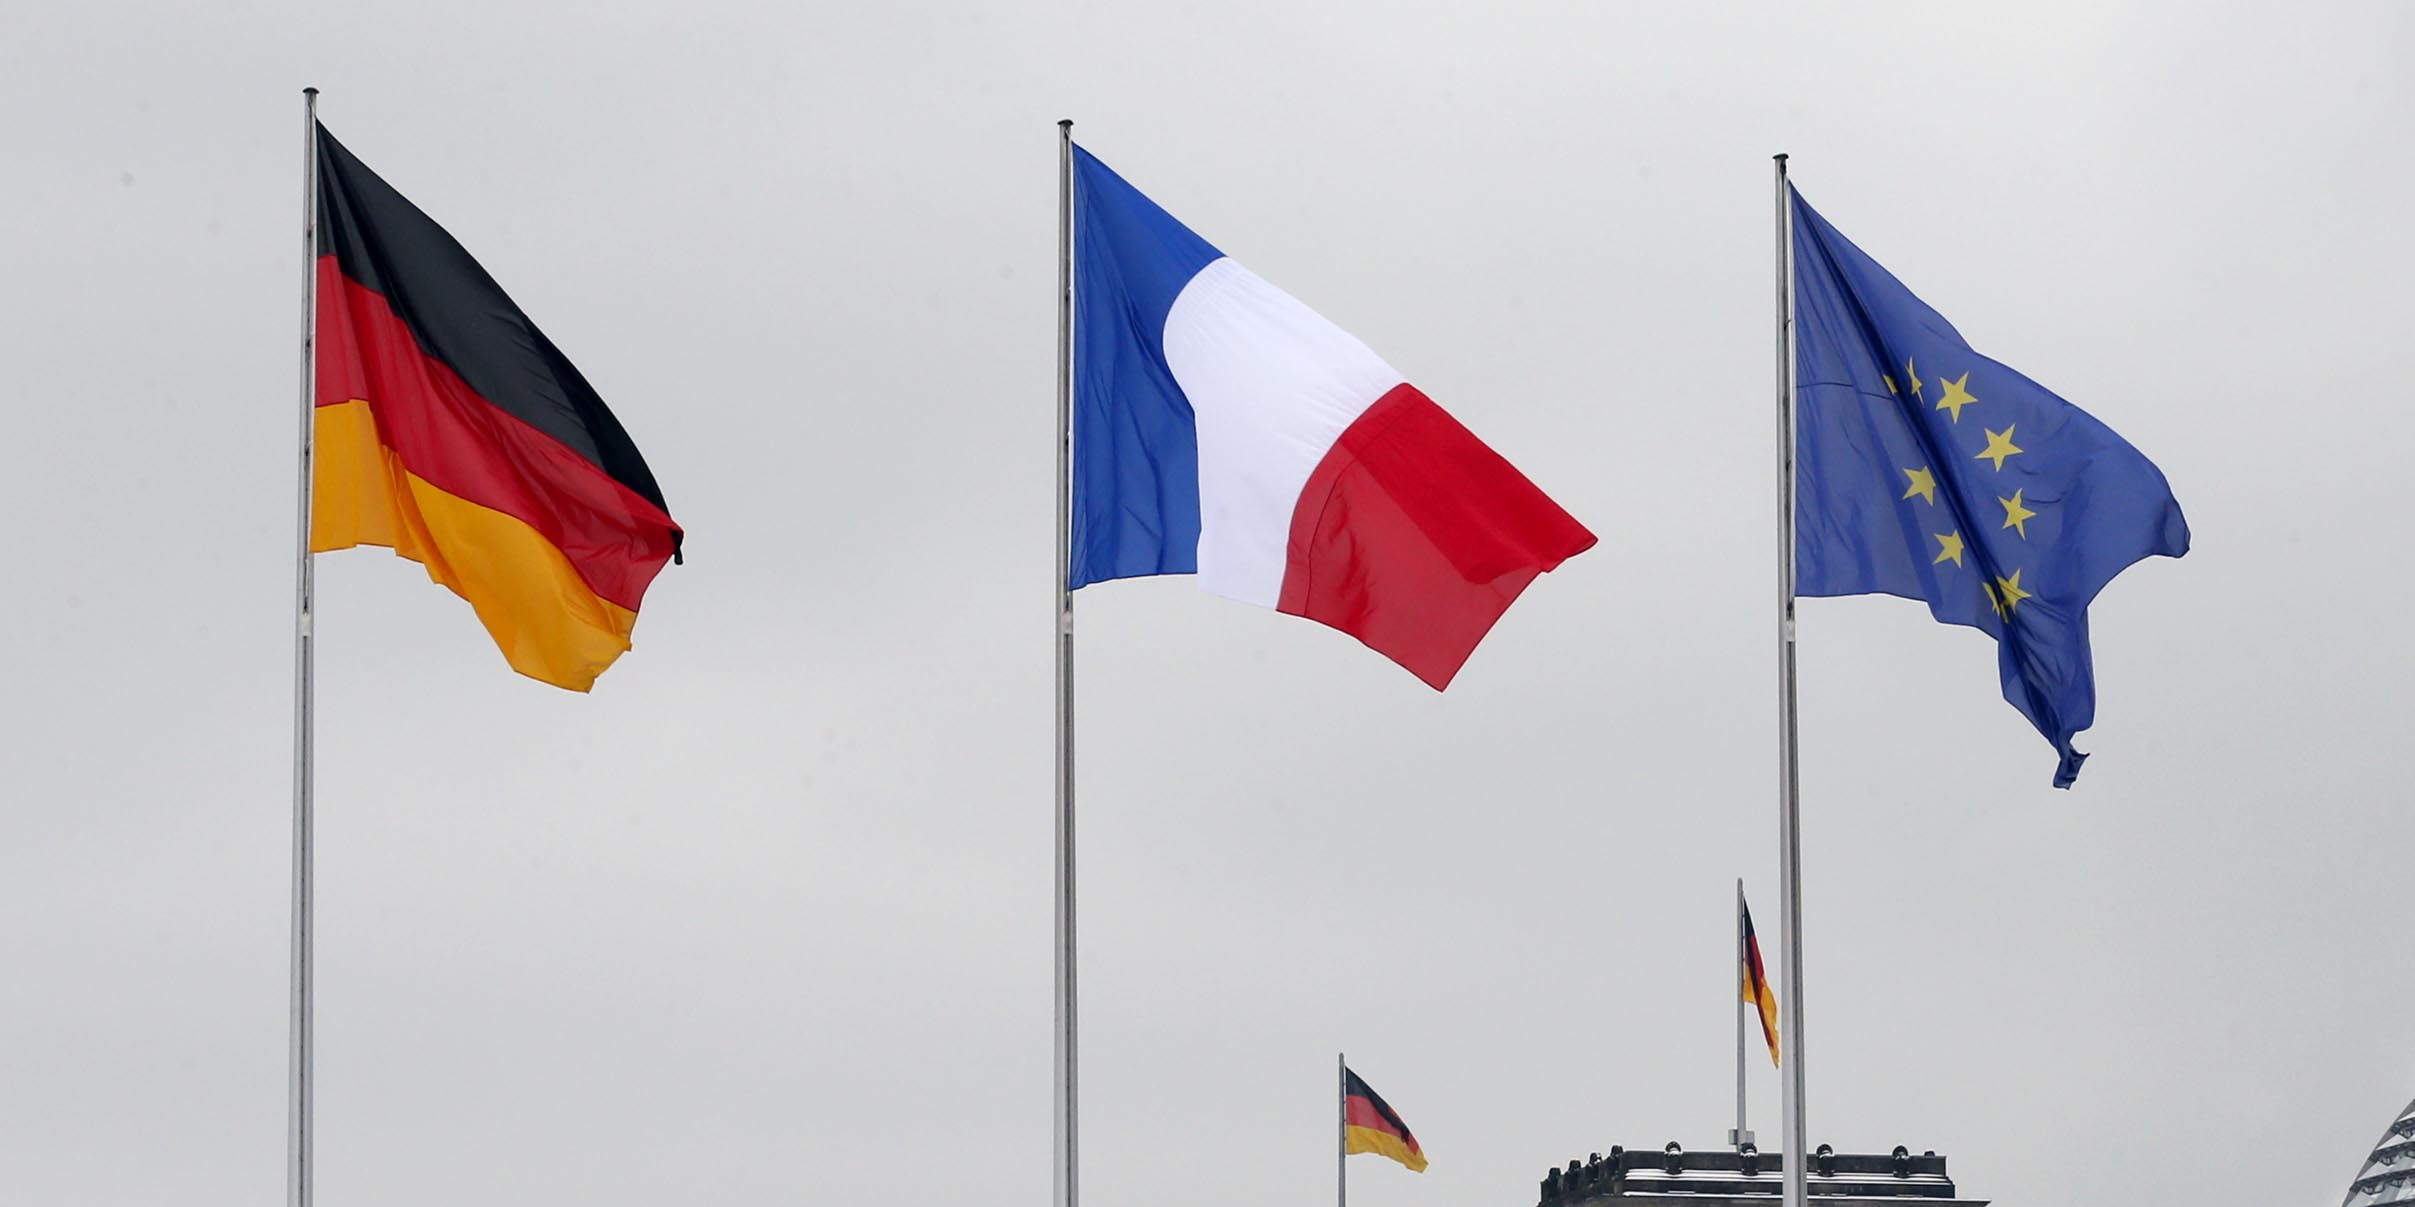 france-allemagne-union-europeenne-europe-drapeaux-flags